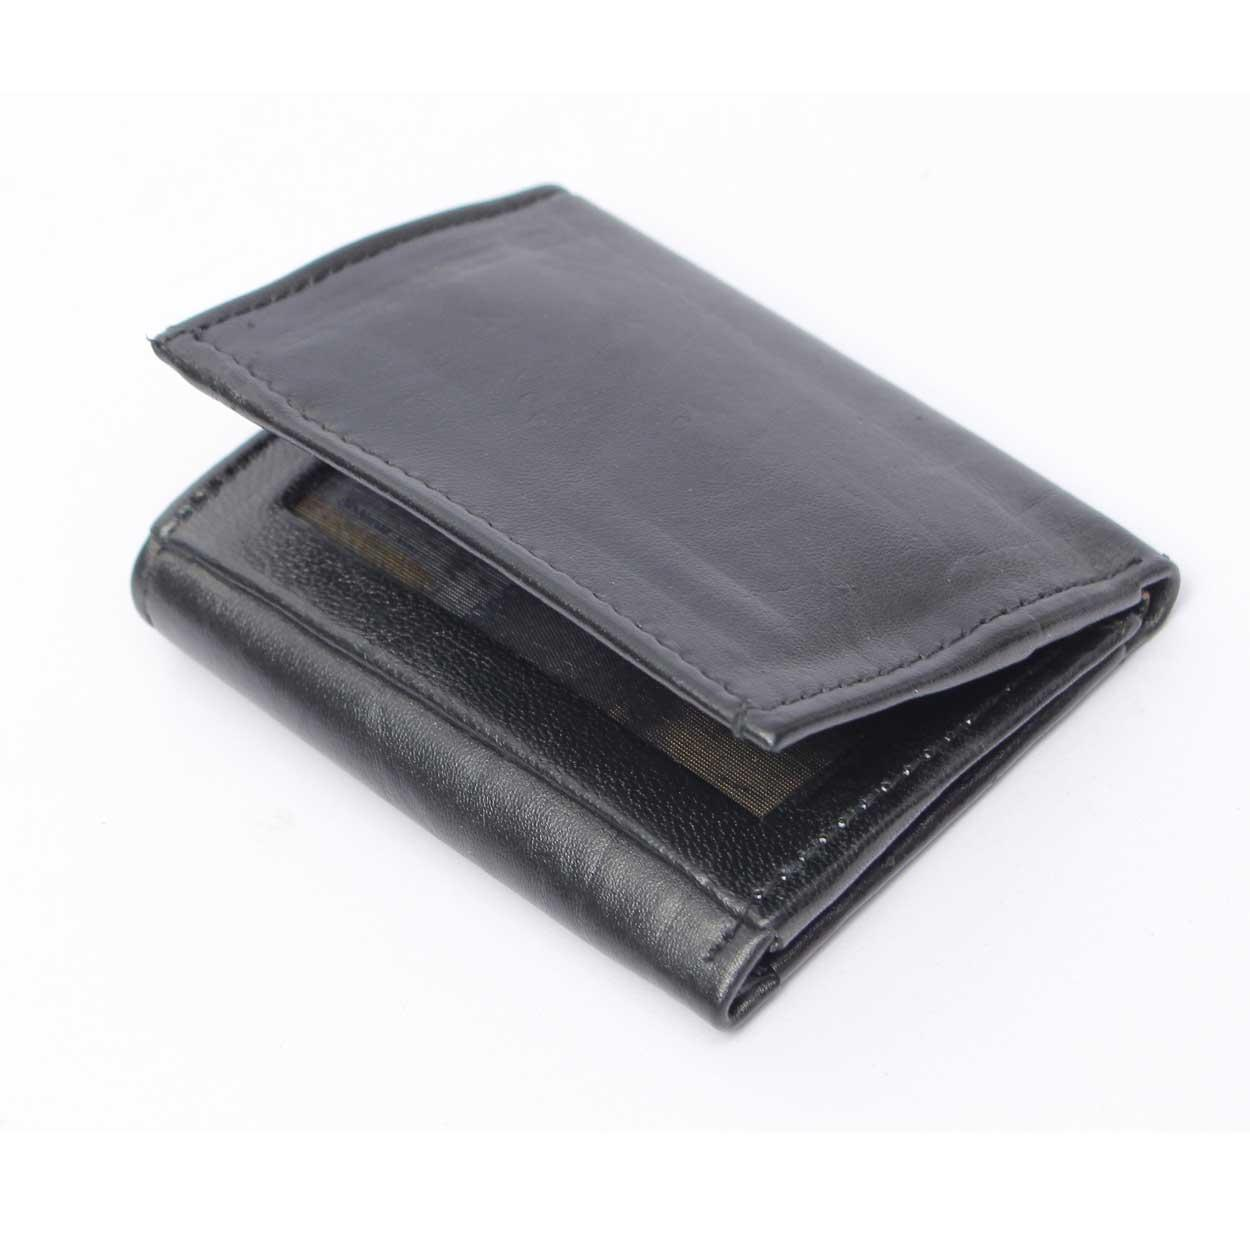 9c6e116cbf0 Fast Forward Men s Credit Business Card Cases Leather Three Fold Cards  Holder Wallet Black